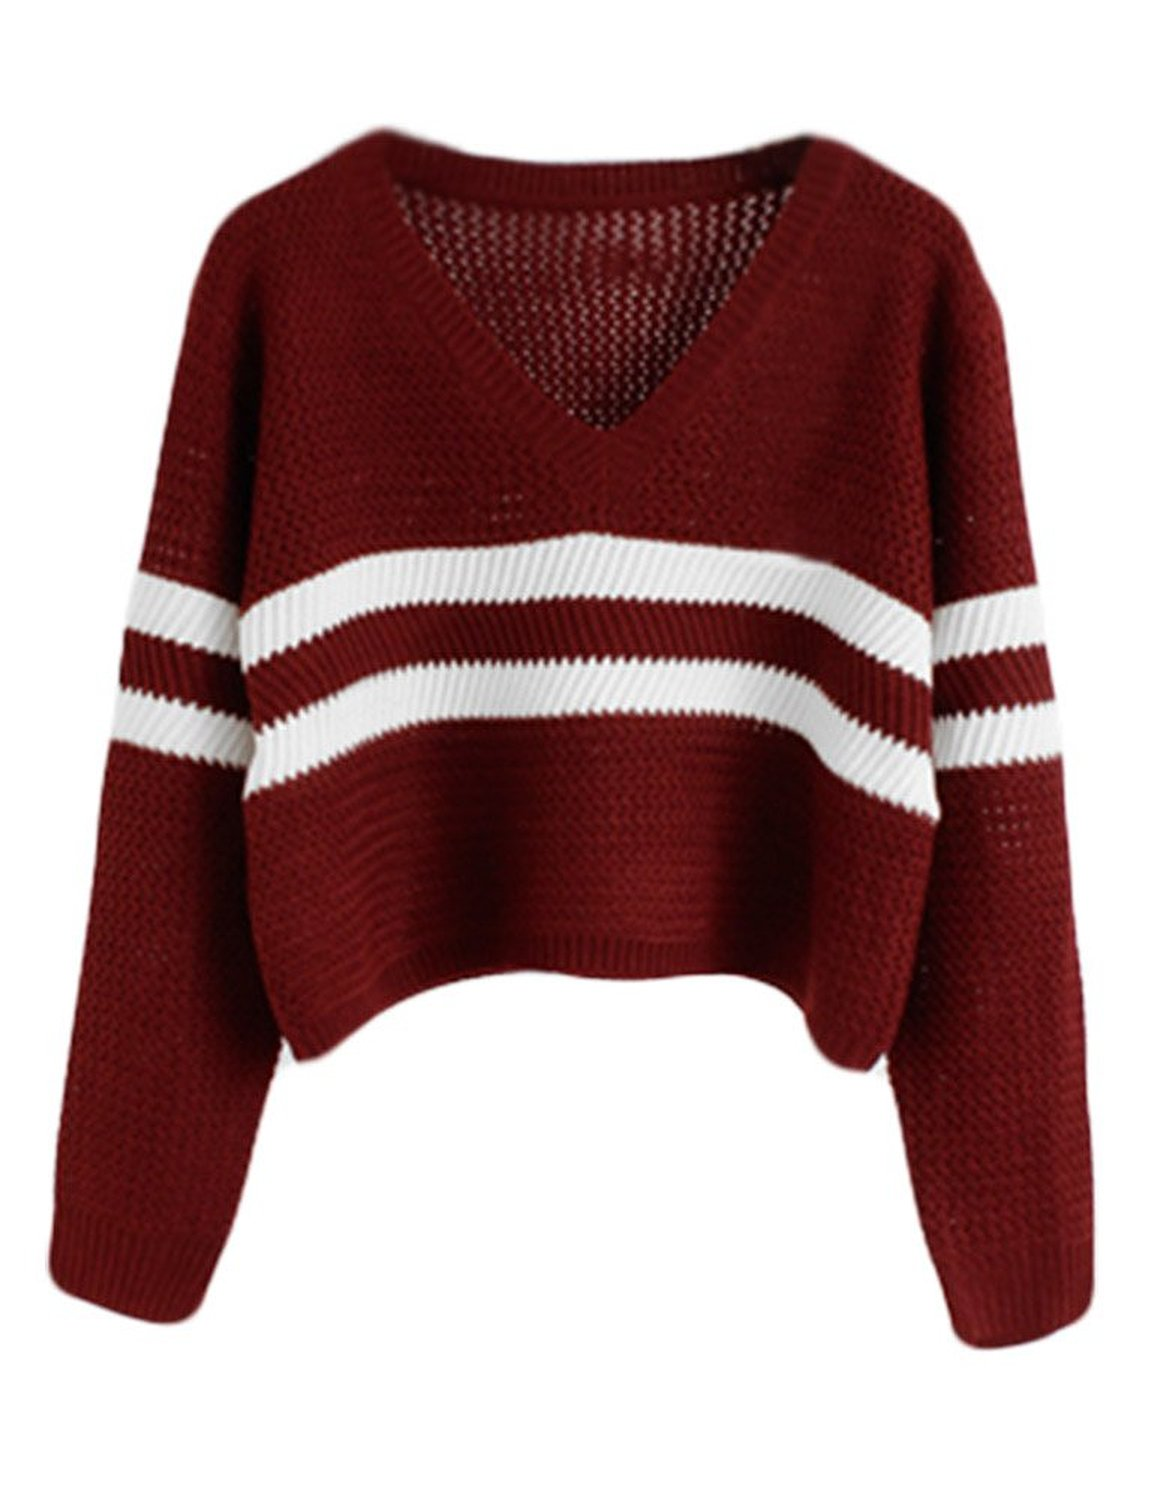 PrettyGuide Women Eyelet Cable Knit Lace Up Crop Long Sleeve Sweater Crop Tops (Striped Burgundy) at Amazon Women's Clothing store: